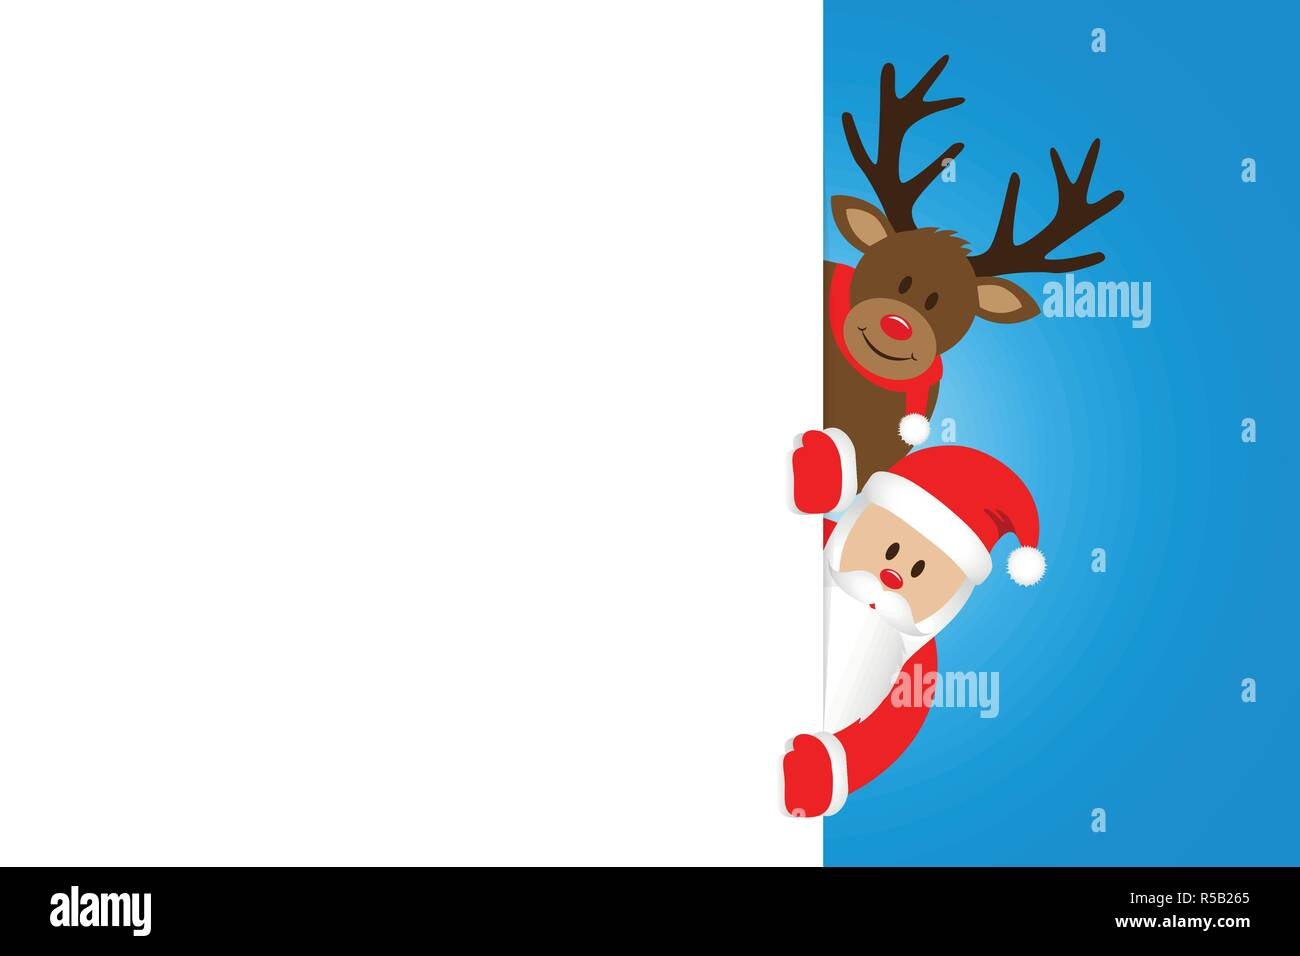 Christmas Cartoon Images.Santa And Reindeer Christmas Cartoon With White Banner